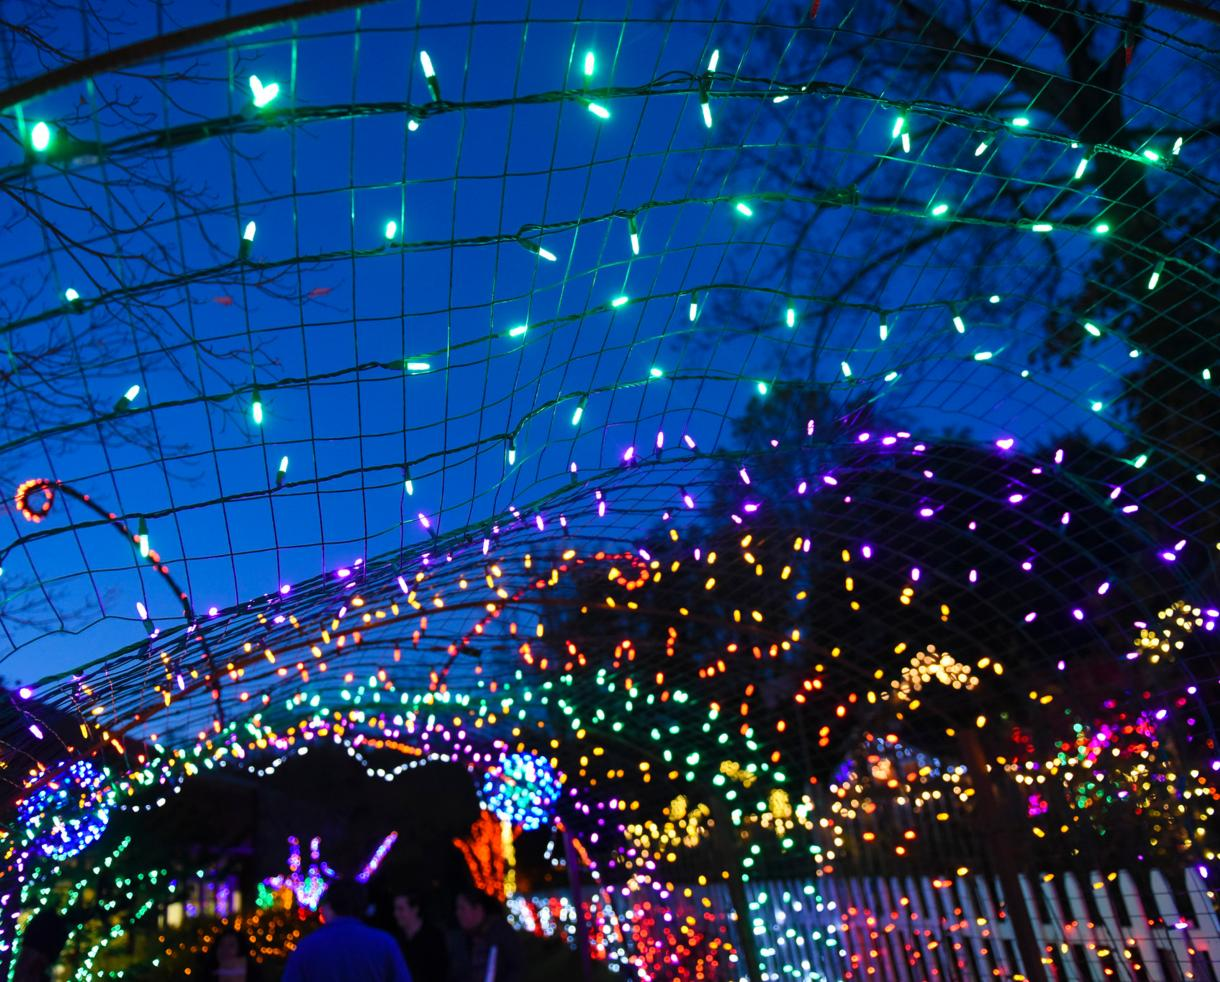 $20 for Garden of Lights Admission for One Car at Brookside Gardens in Wheaton (20% Off)